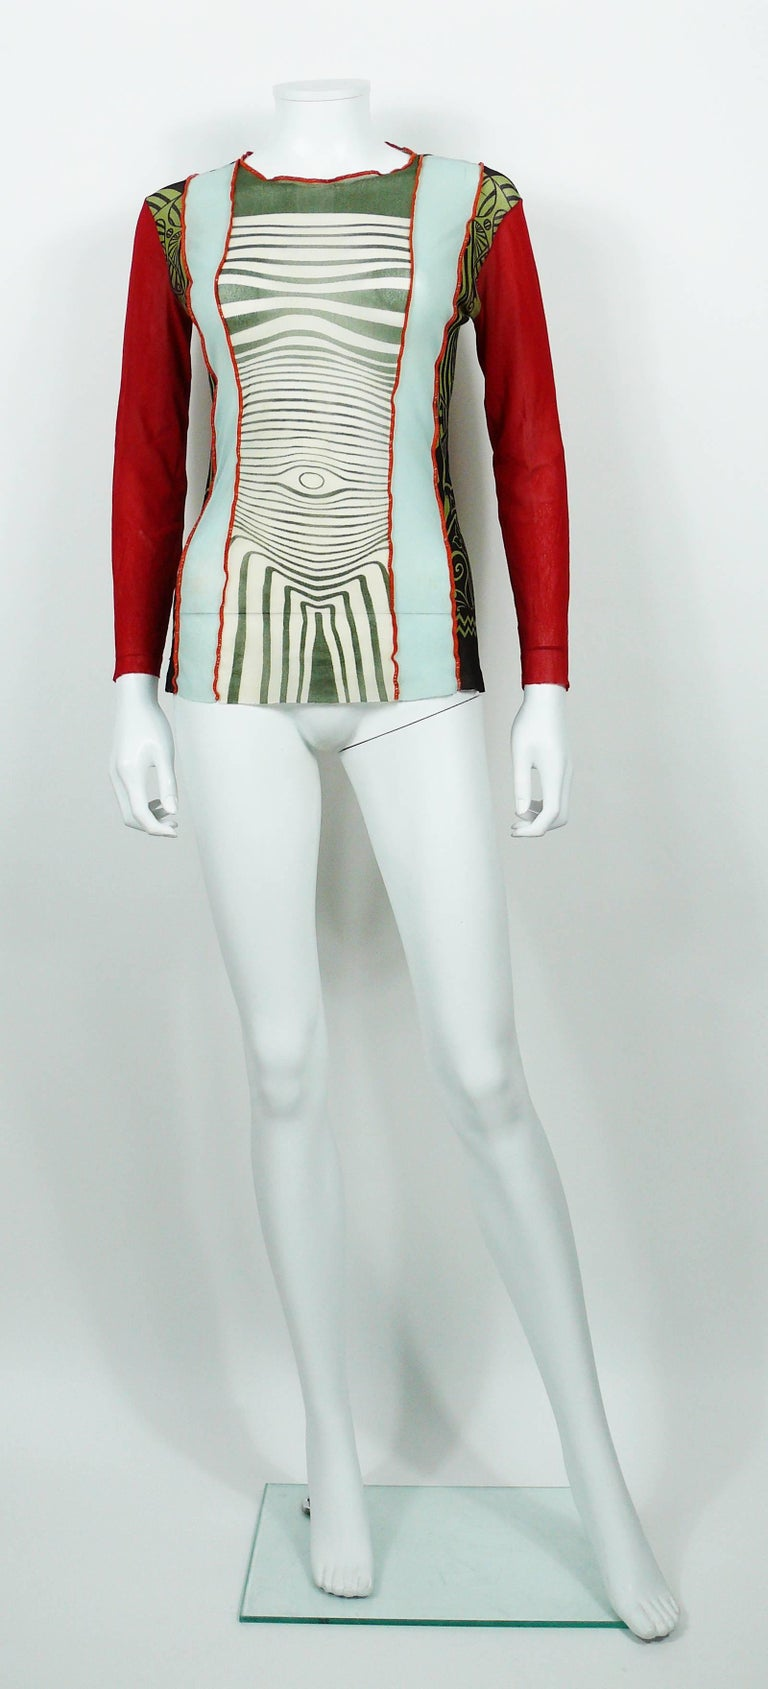 Women's Jean Paul Gaultier Vintage 1996 Cyberbaba Body Map Optical Illusion Top Size L